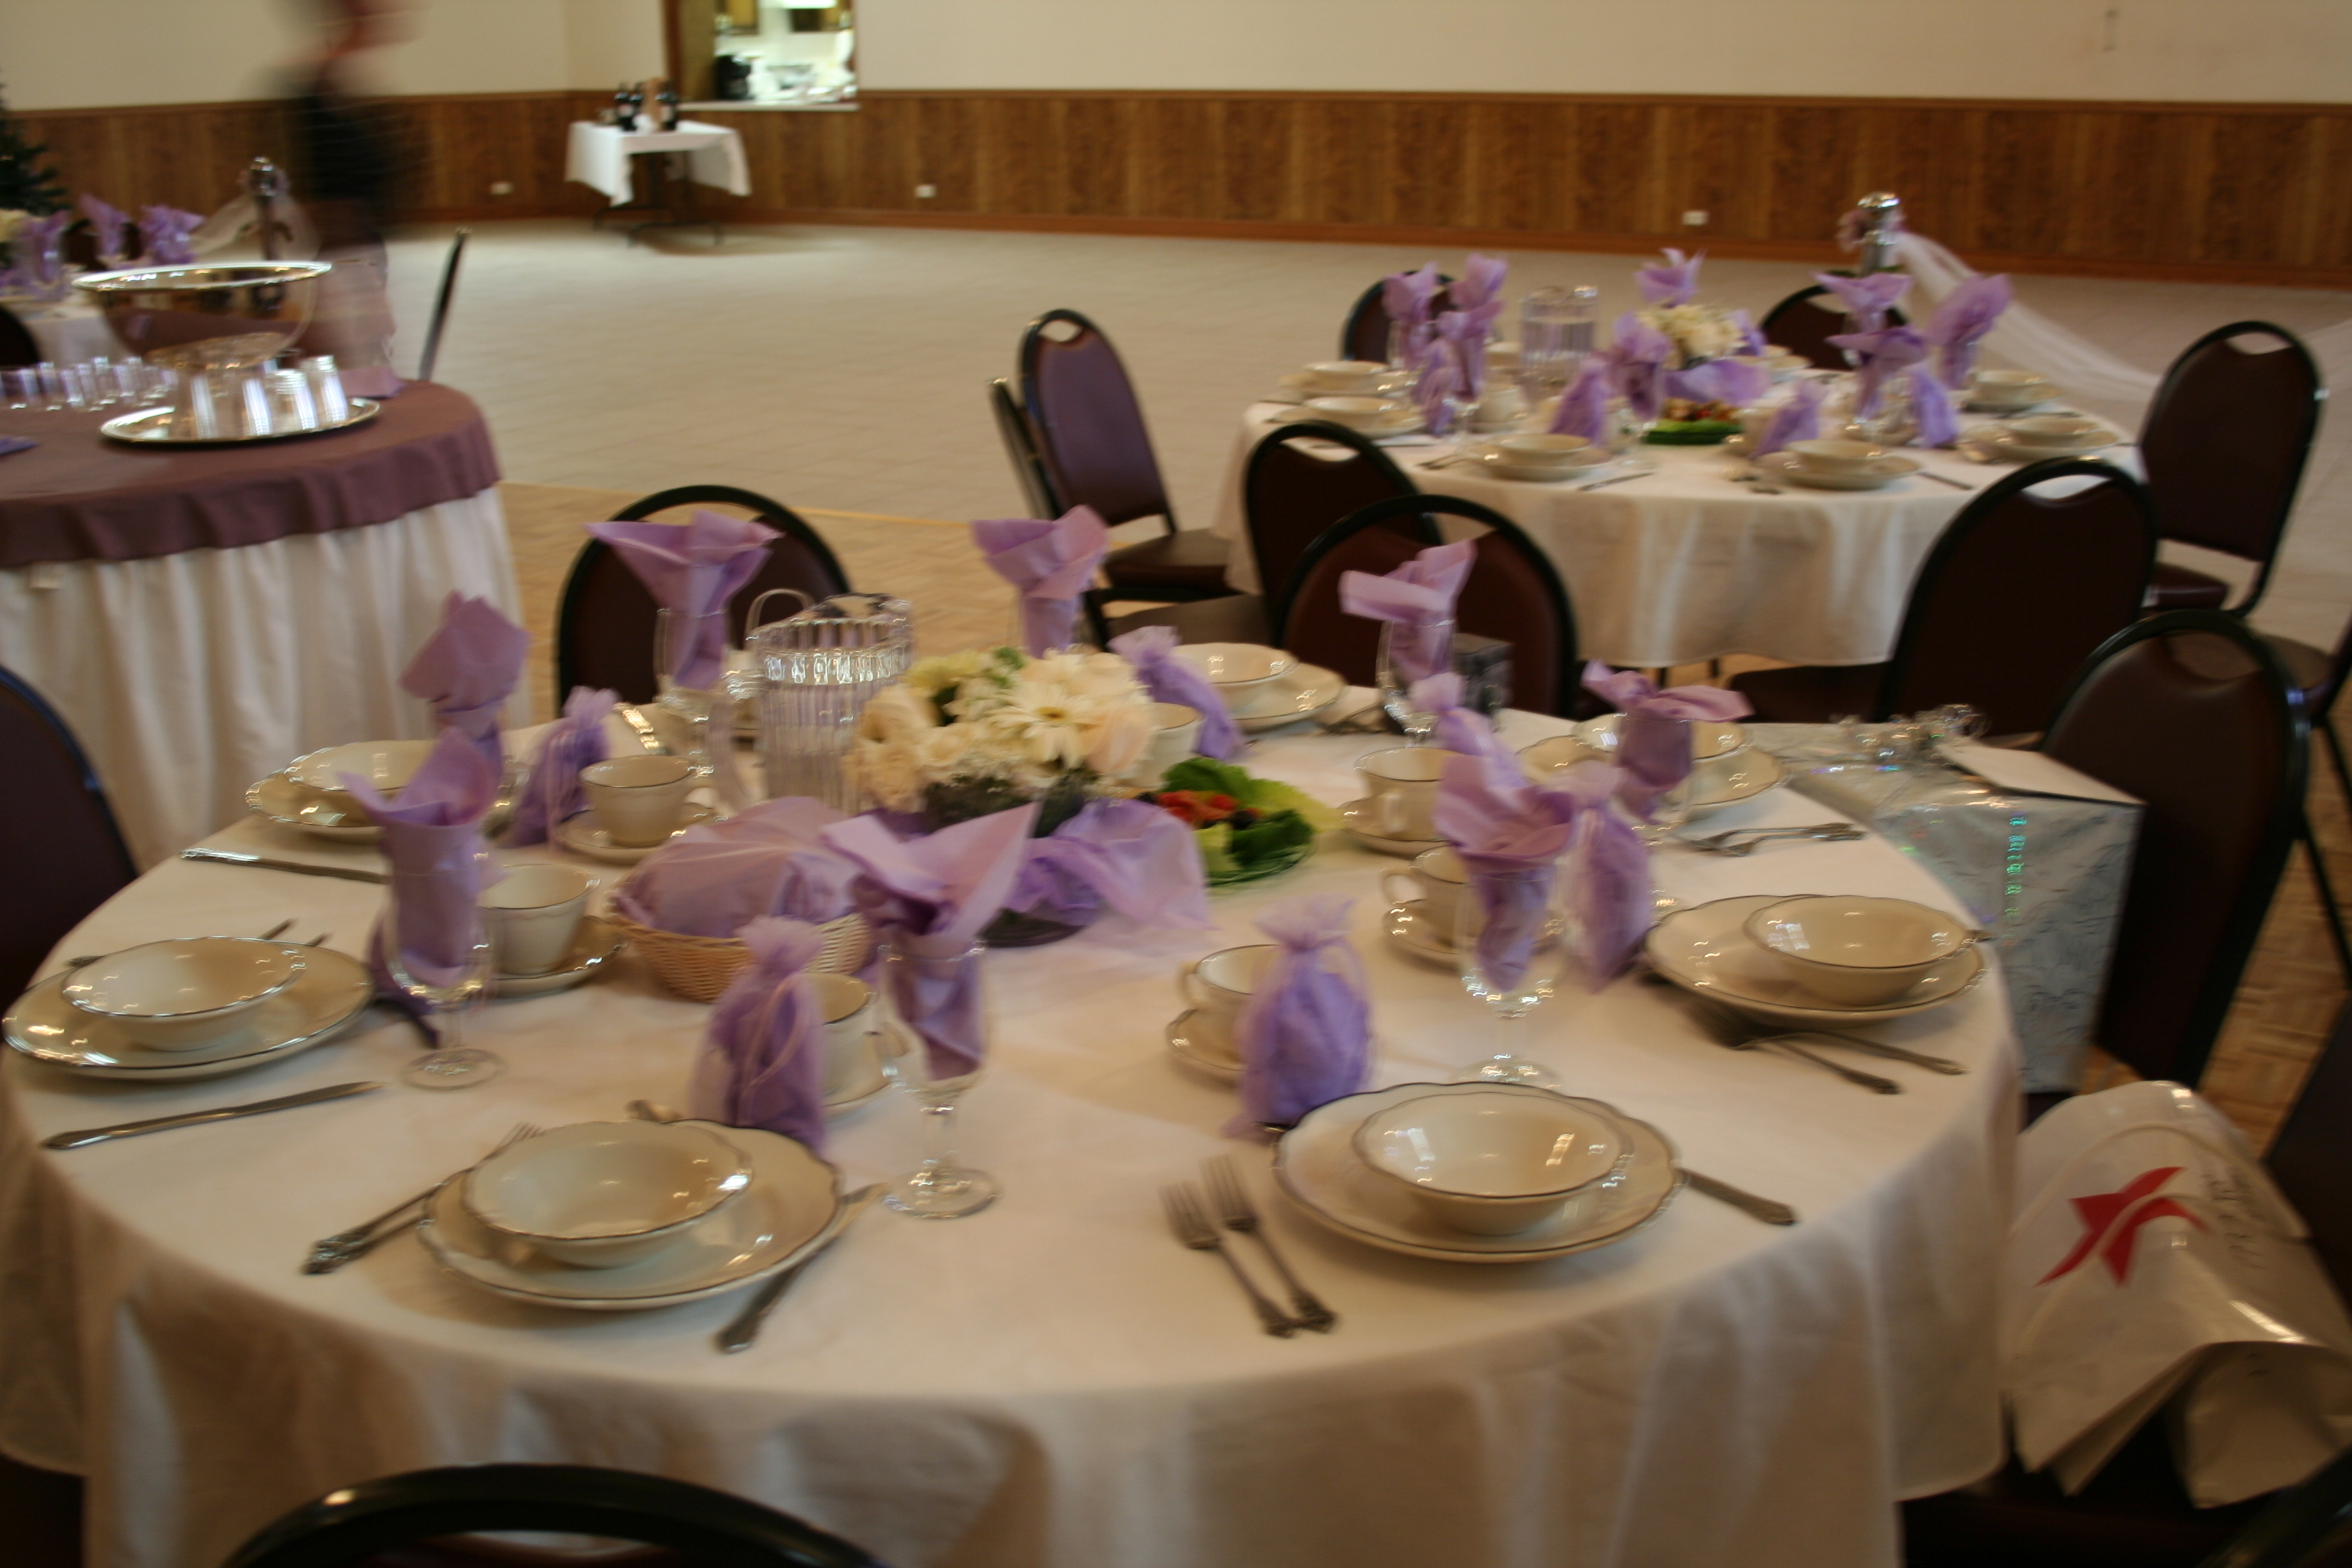 St andrew ukrainian orthodox church banquet hall rental